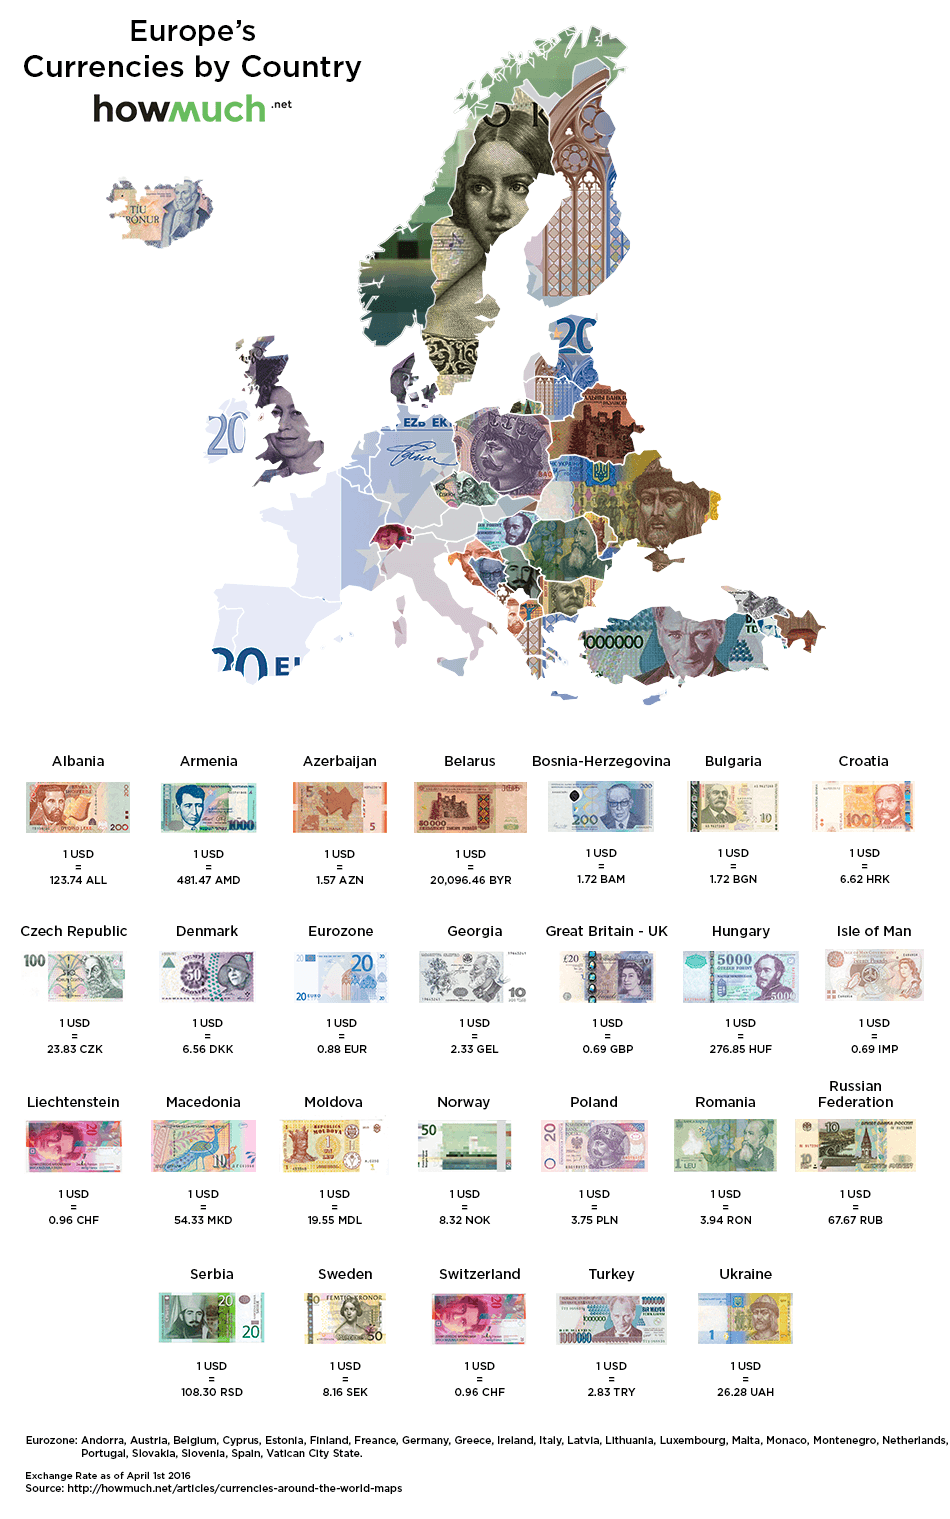 In The Map 5 Locations Have Stronger Currencies Than The U S Dollar Isle Of Man Great Britain Uk European Union Liechtenstein And Switzerland